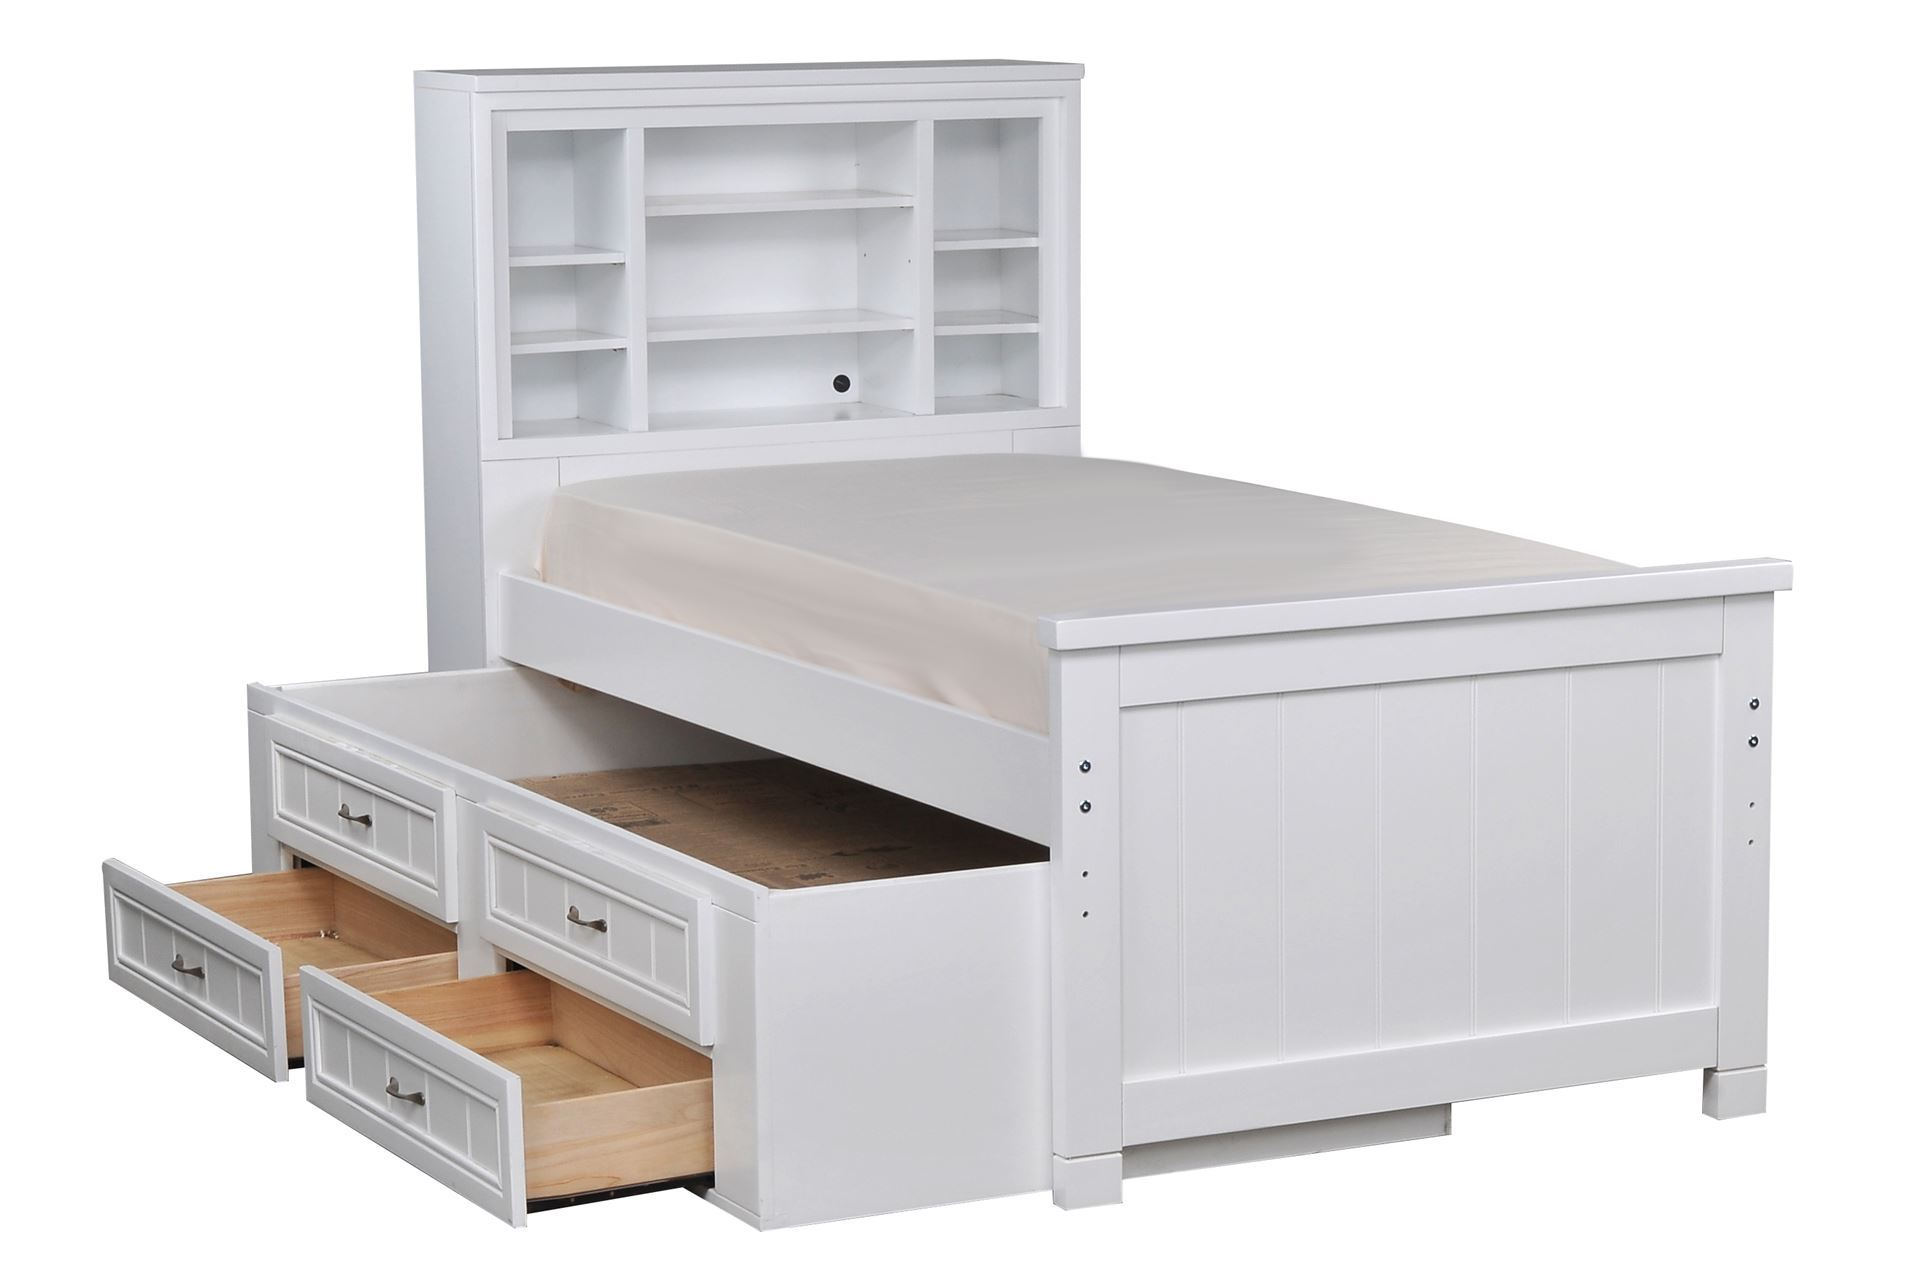 Captains trundle bed living spaces - White twin captains bed with drawers ...